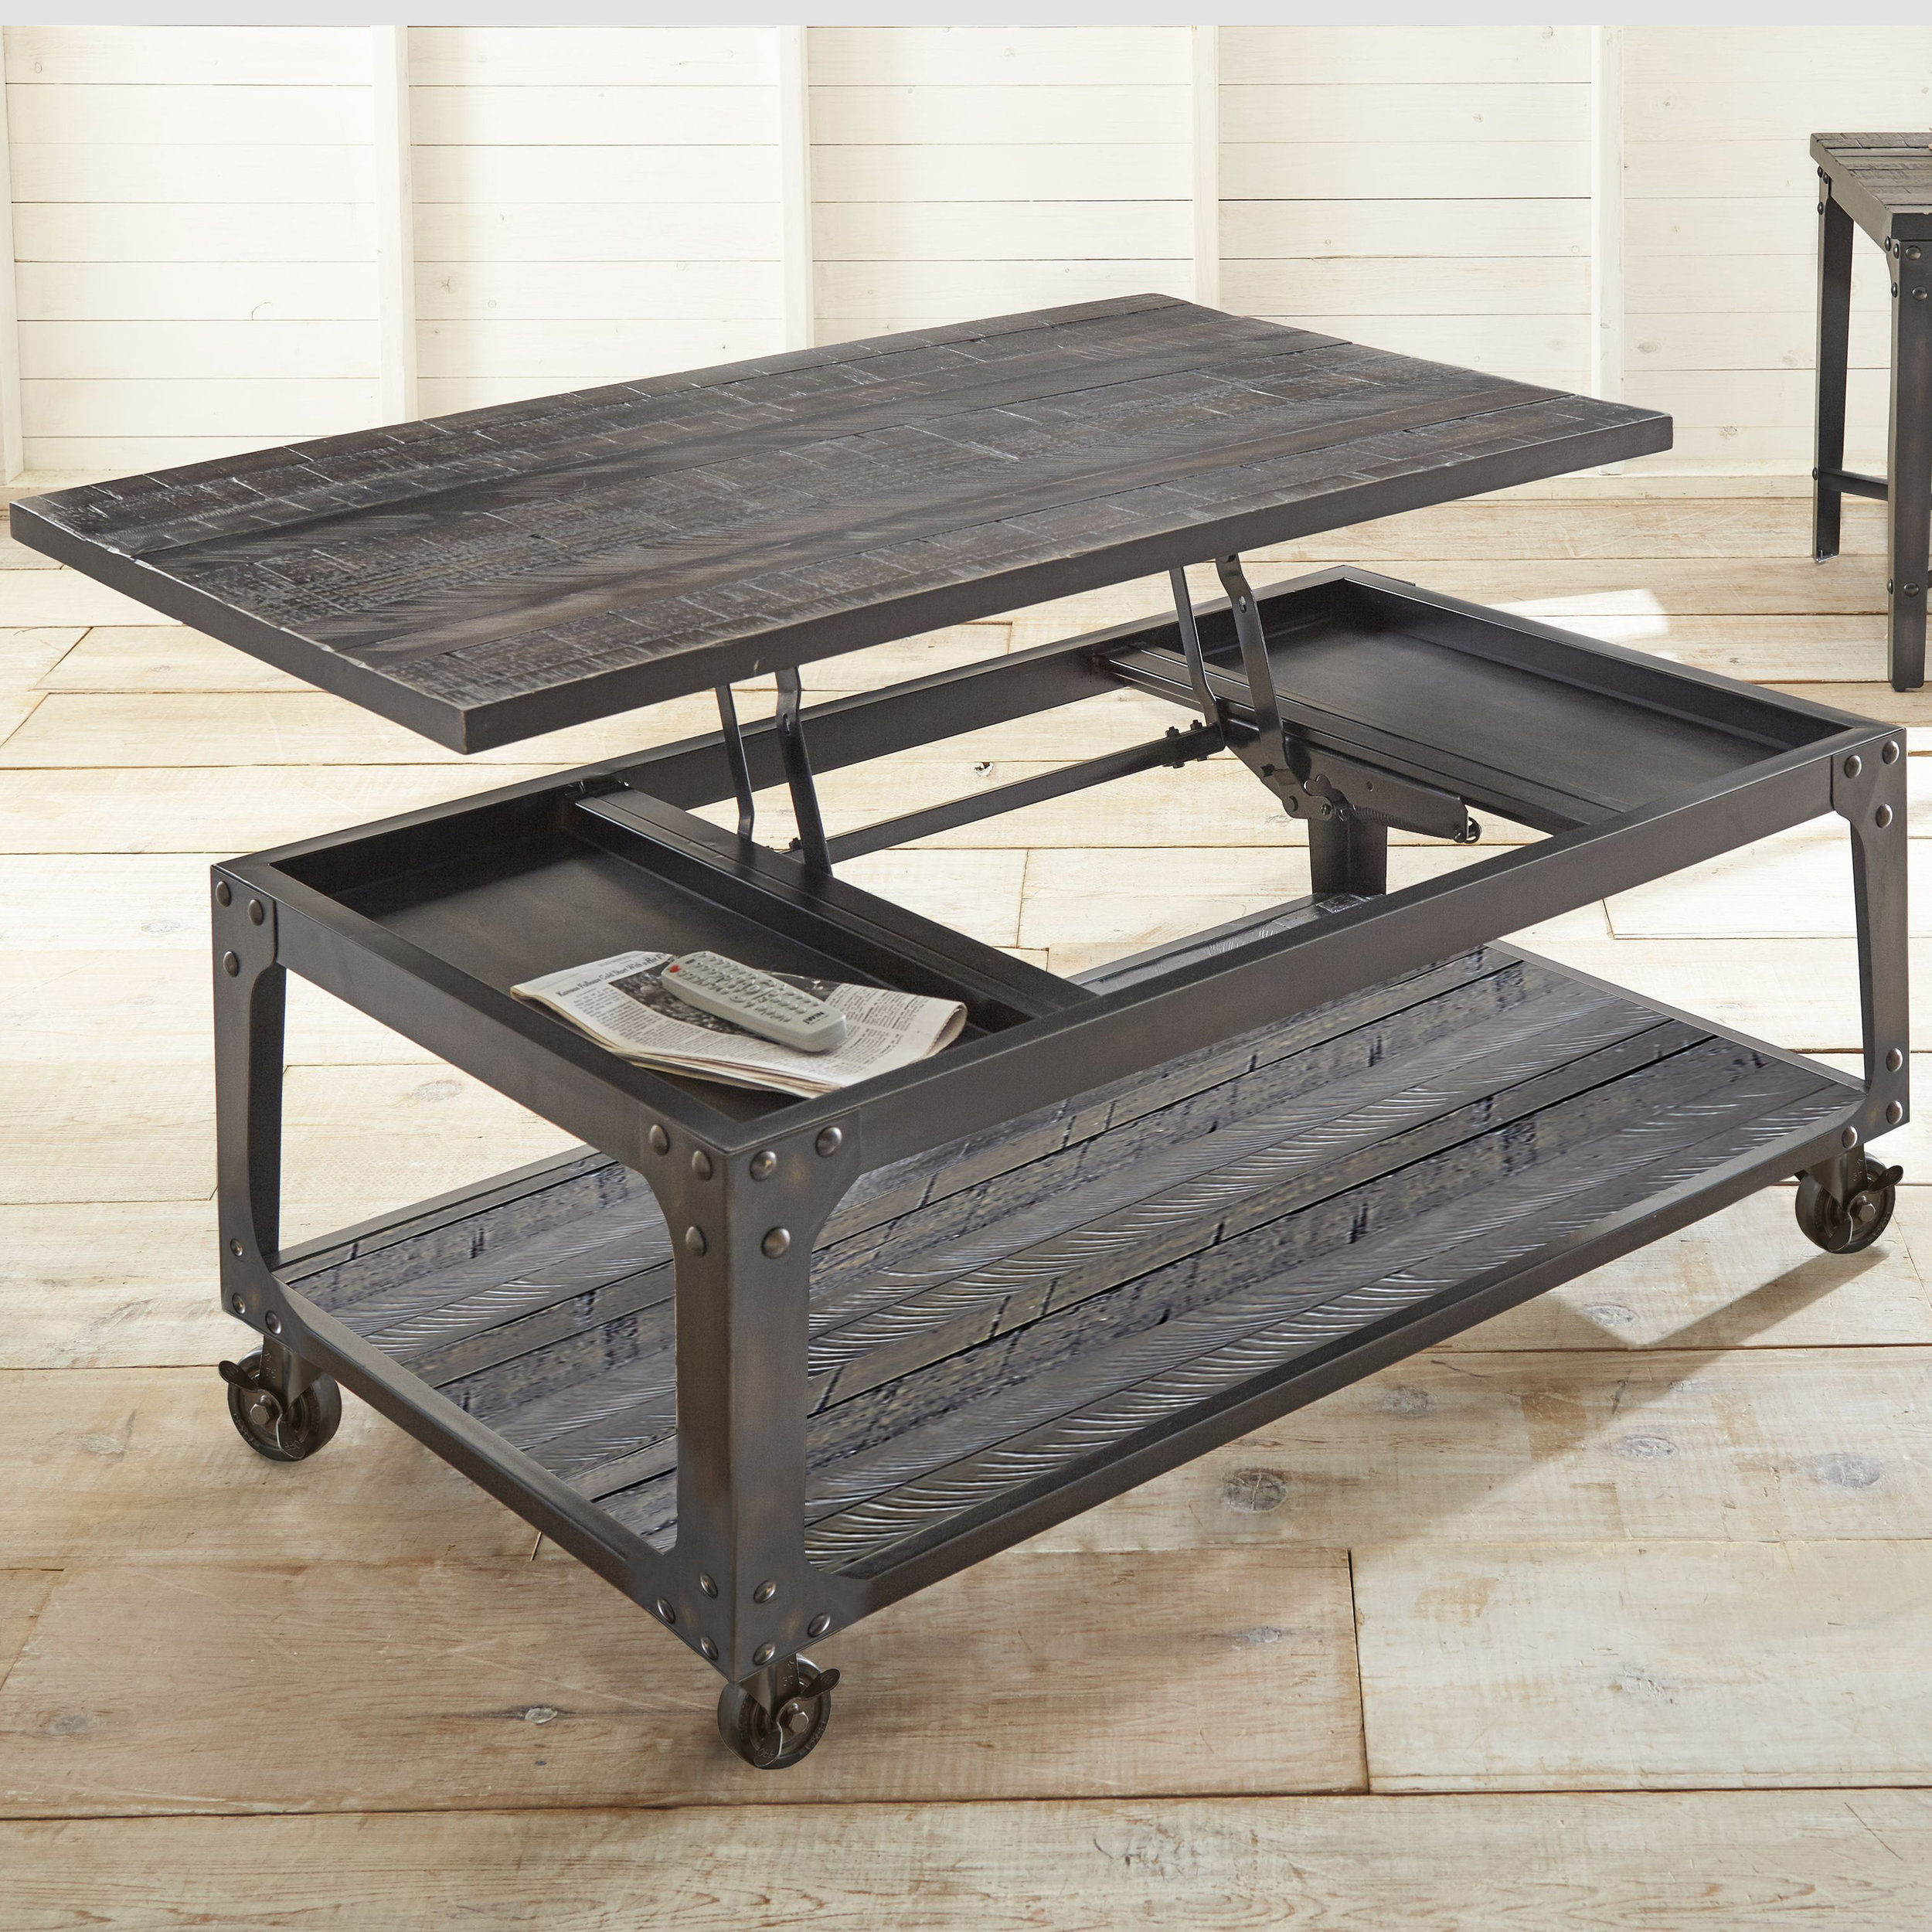 Kirkland's - Sheldon Lift Top Coffee Table with Casters